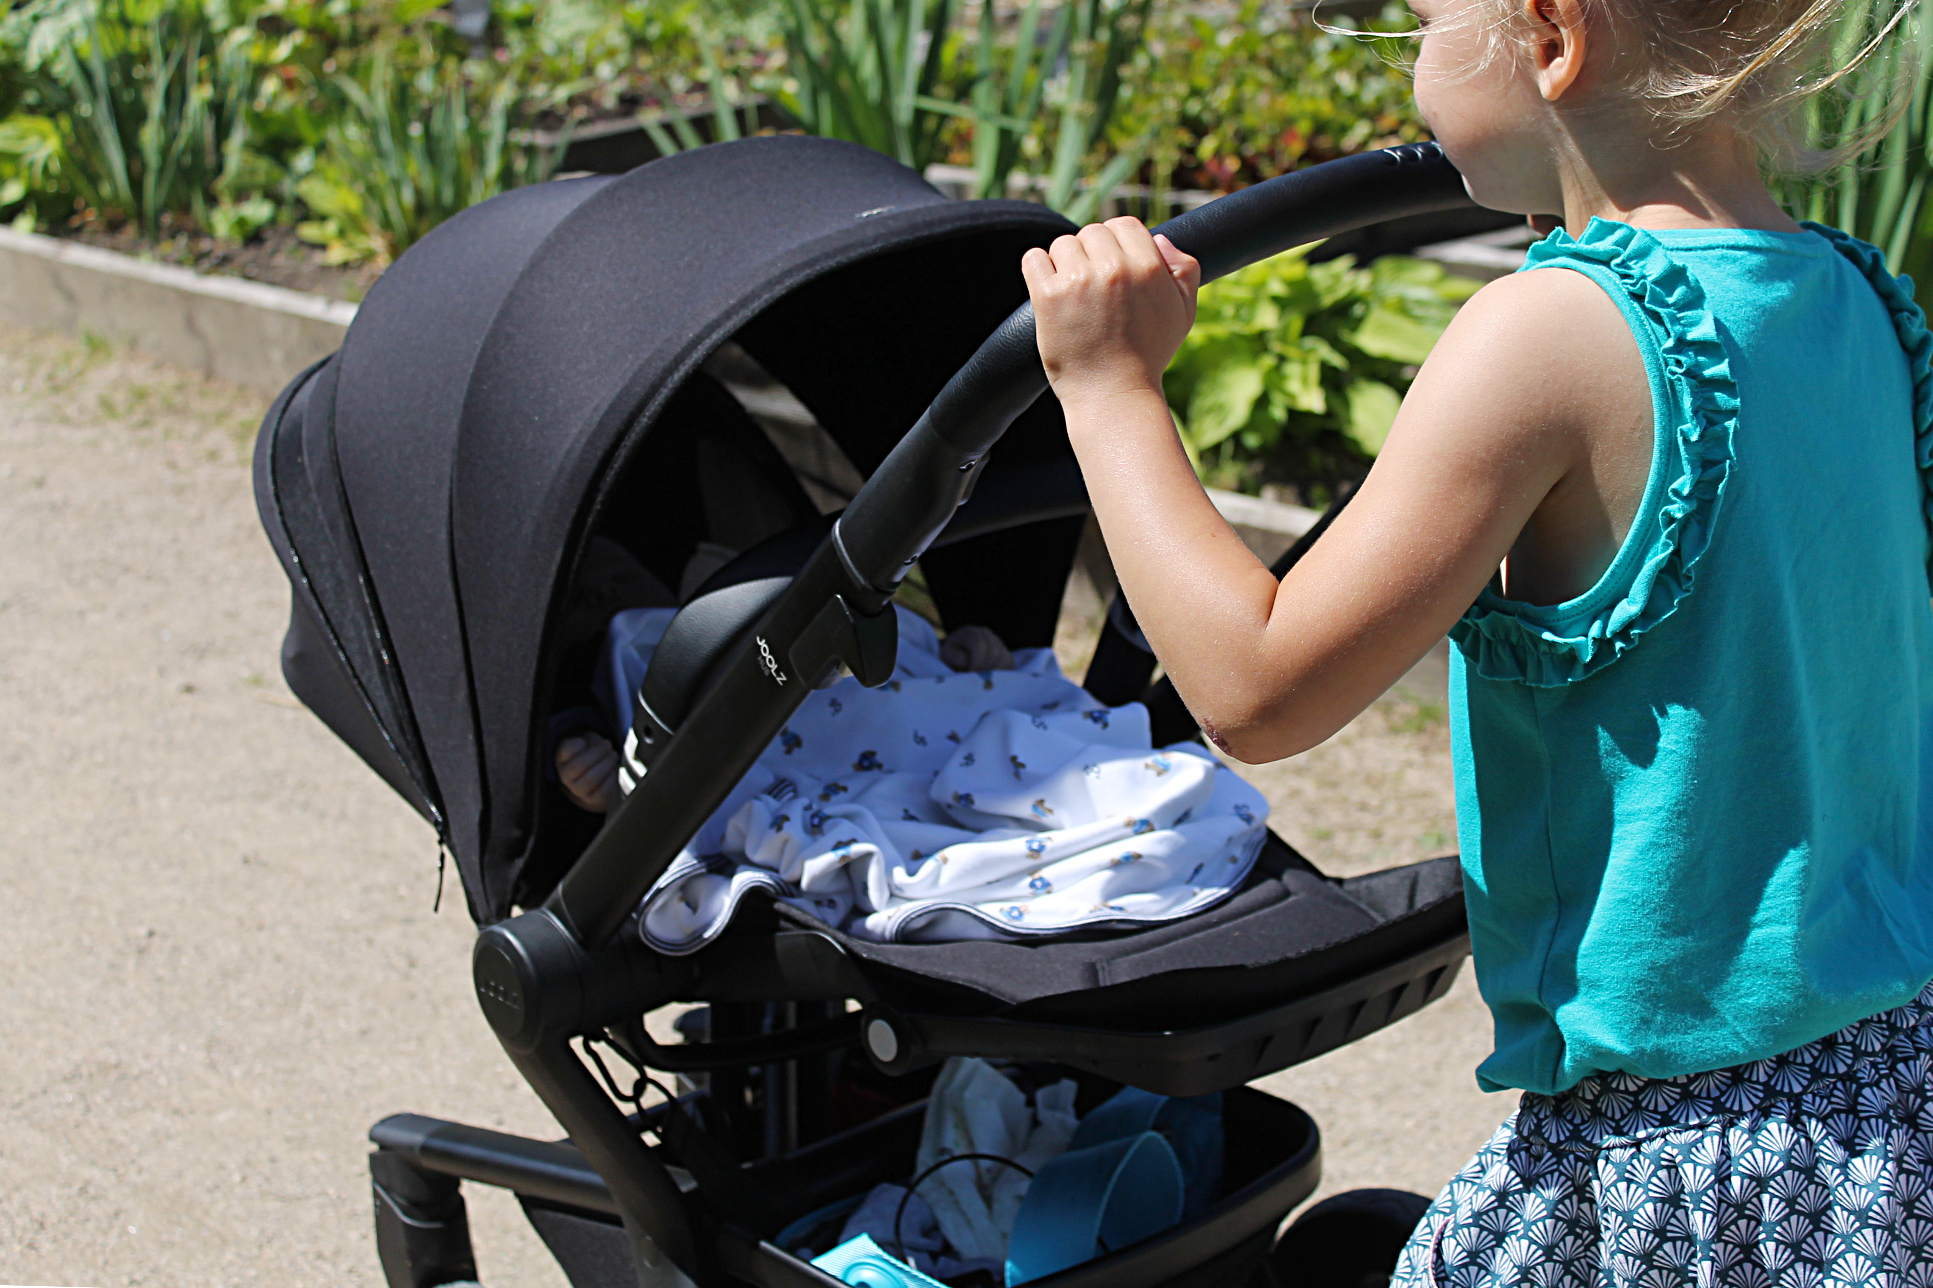 A young girl pushing a baby in a black pram in the park. The focus is on the baby in the pushchair